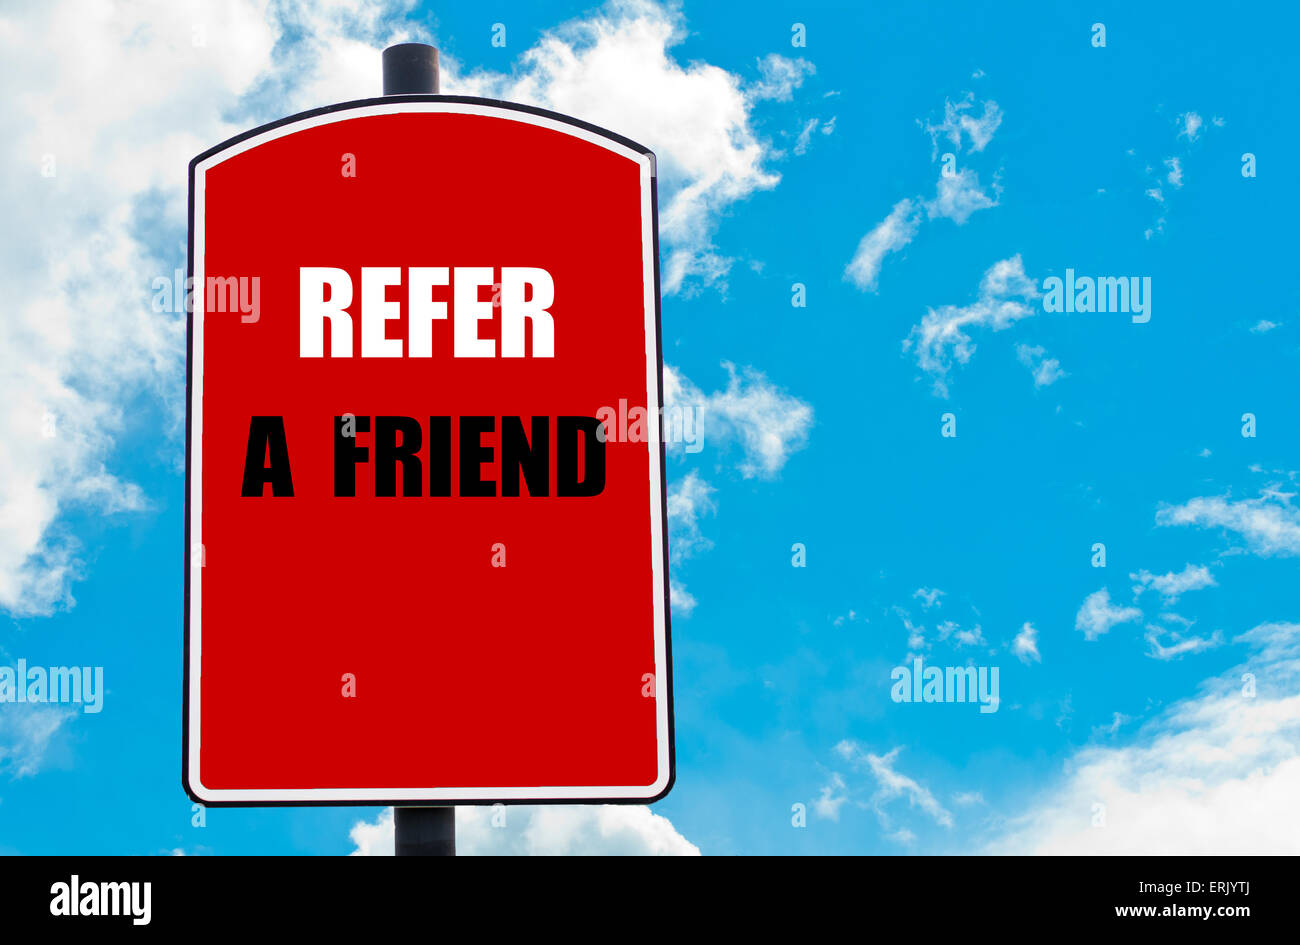 Refer a Friend motivational quote written on red road sign isolated over clear blue sky background. - Stock Image